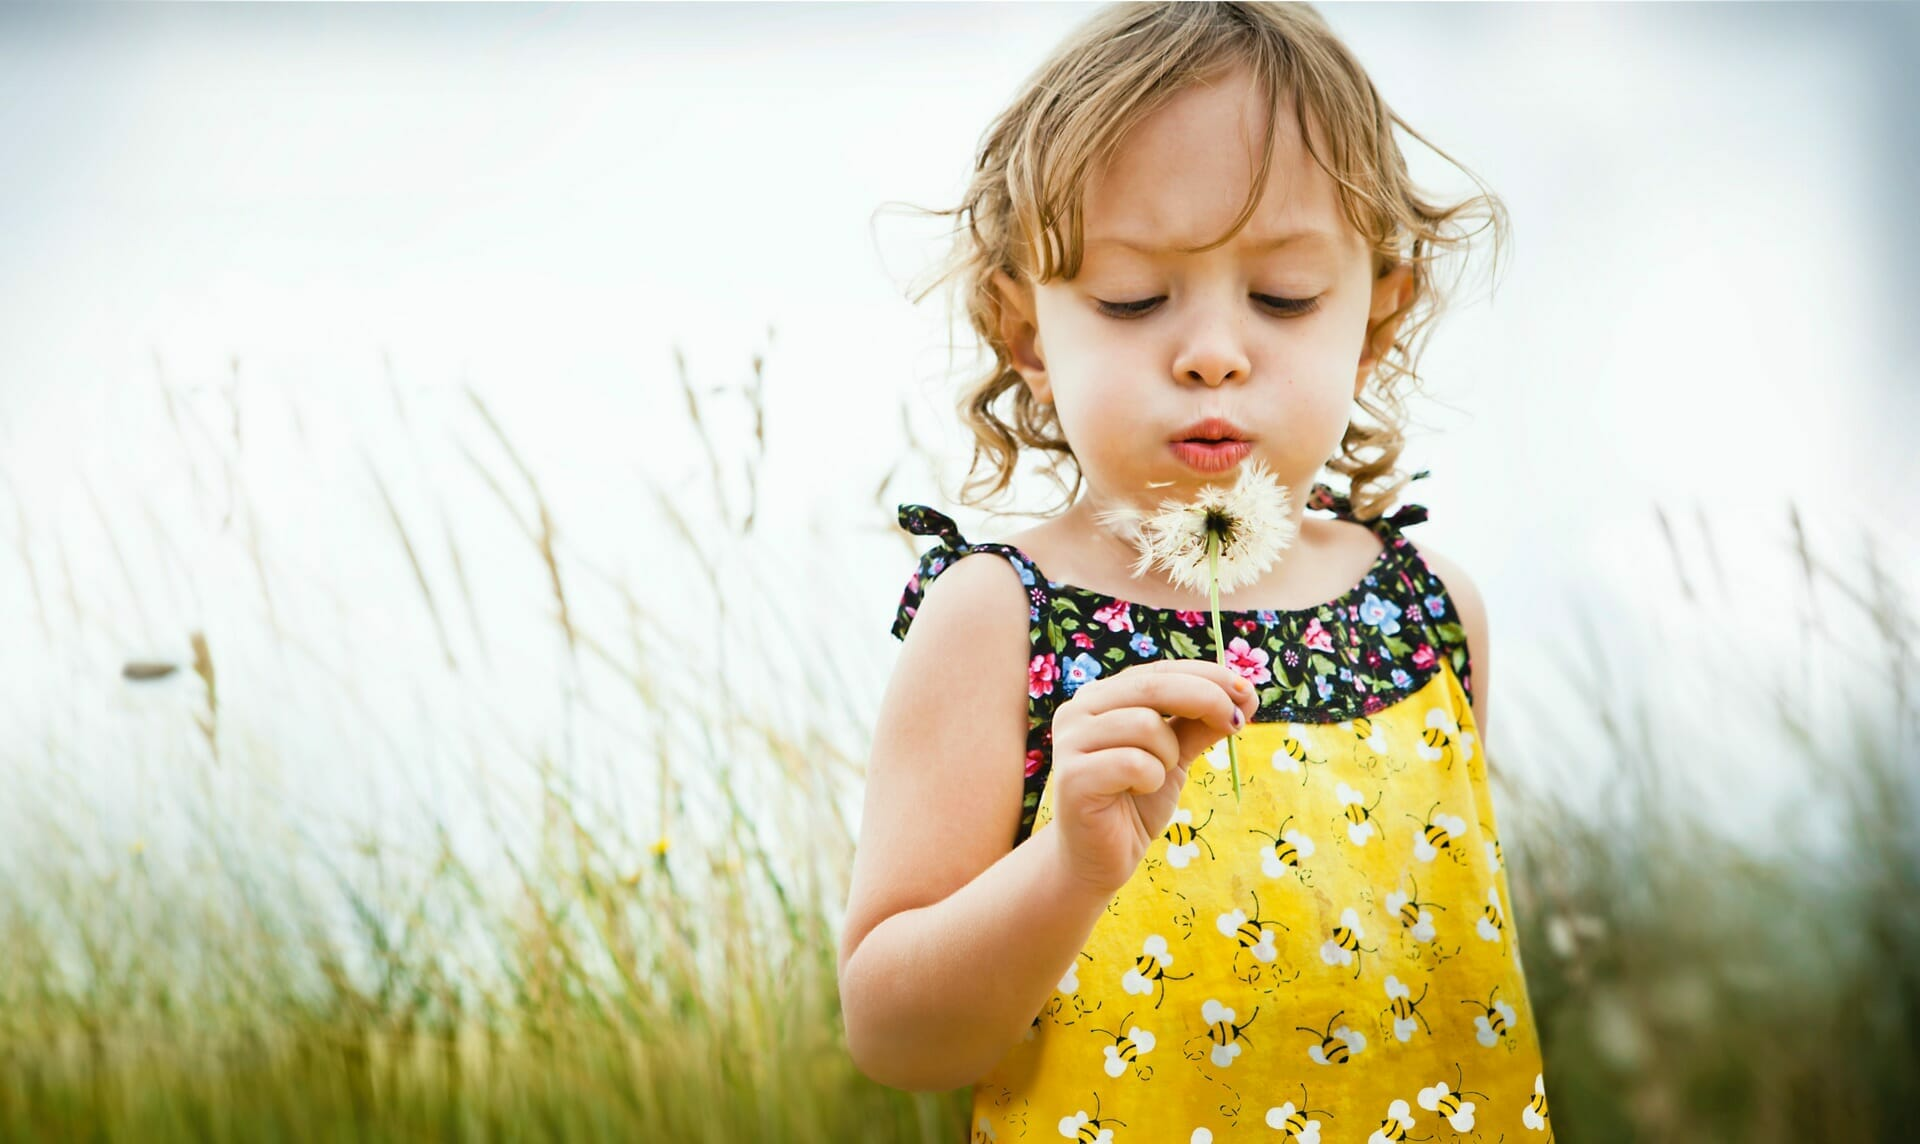 Image of a toddler blowing on a dandelion in a field